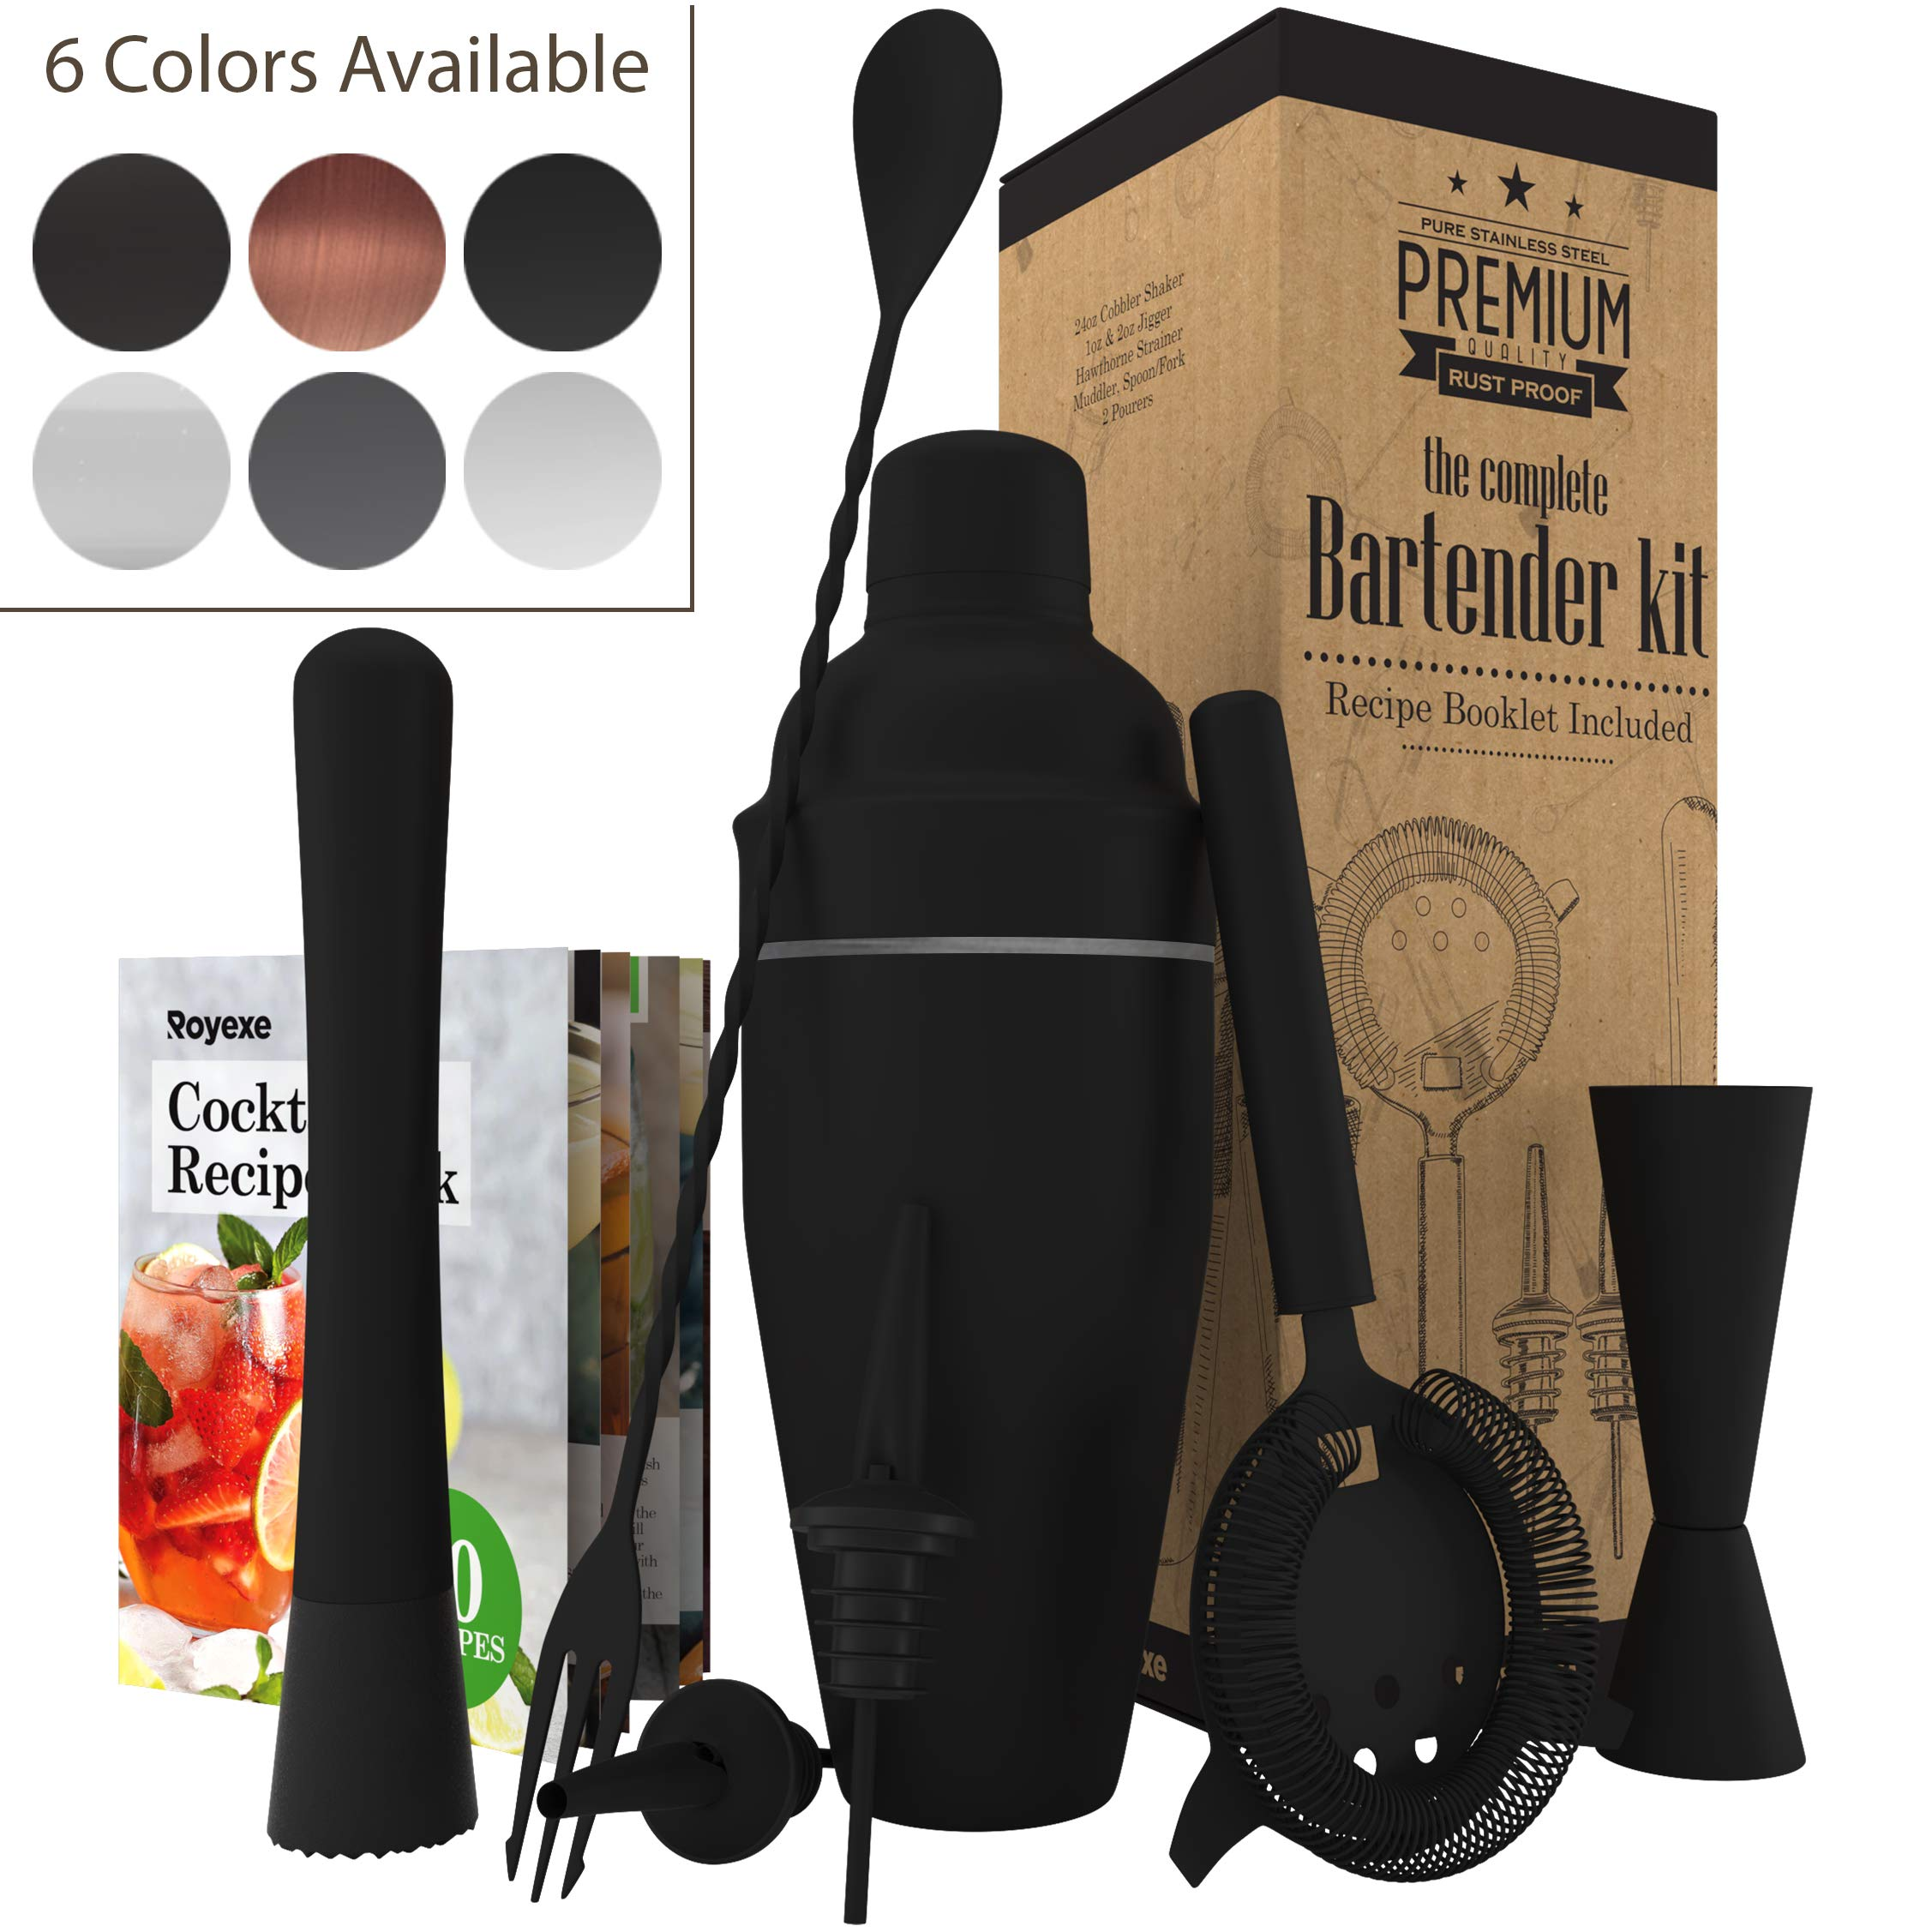 All-inclusive Bar Set | Professional Home Bartender Cocktail Shaker Set | Includes a Recipe Book & All Necessary Bar Tools and Accessories | Impressive Gift for Men! (Matte Black)